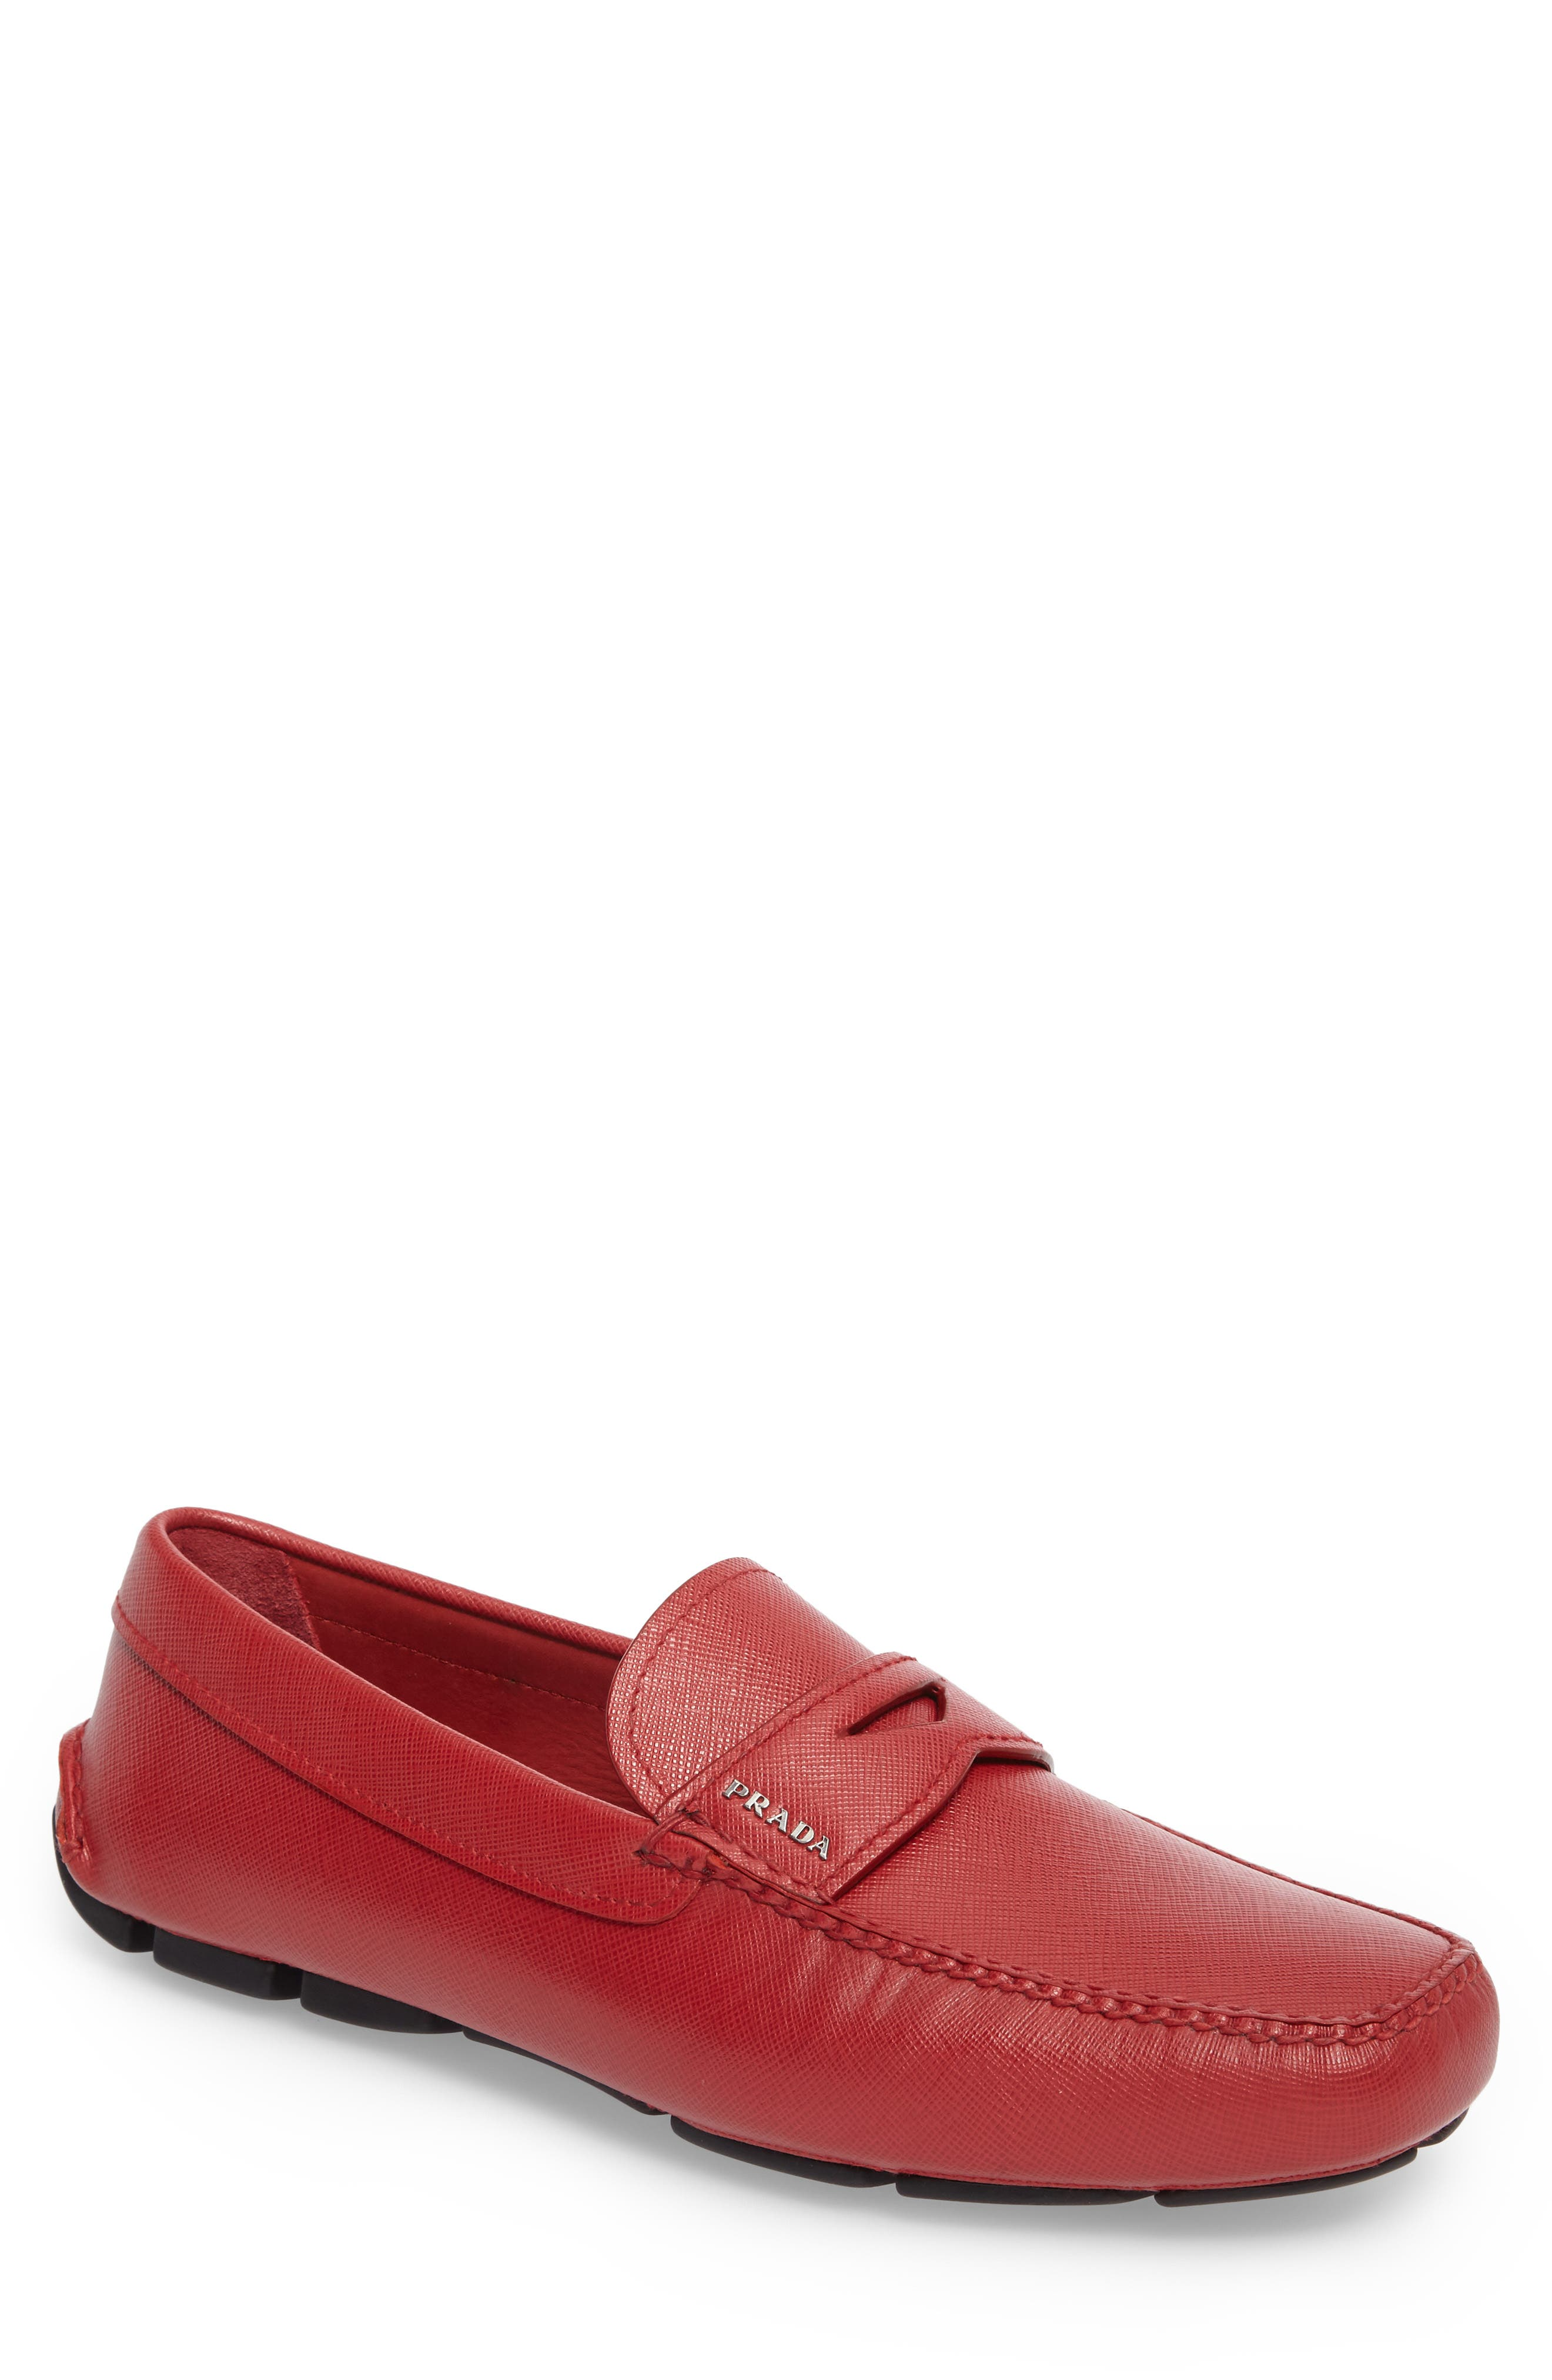 Alternate Image 1 Selected - Prada Driving Shoe (Men)